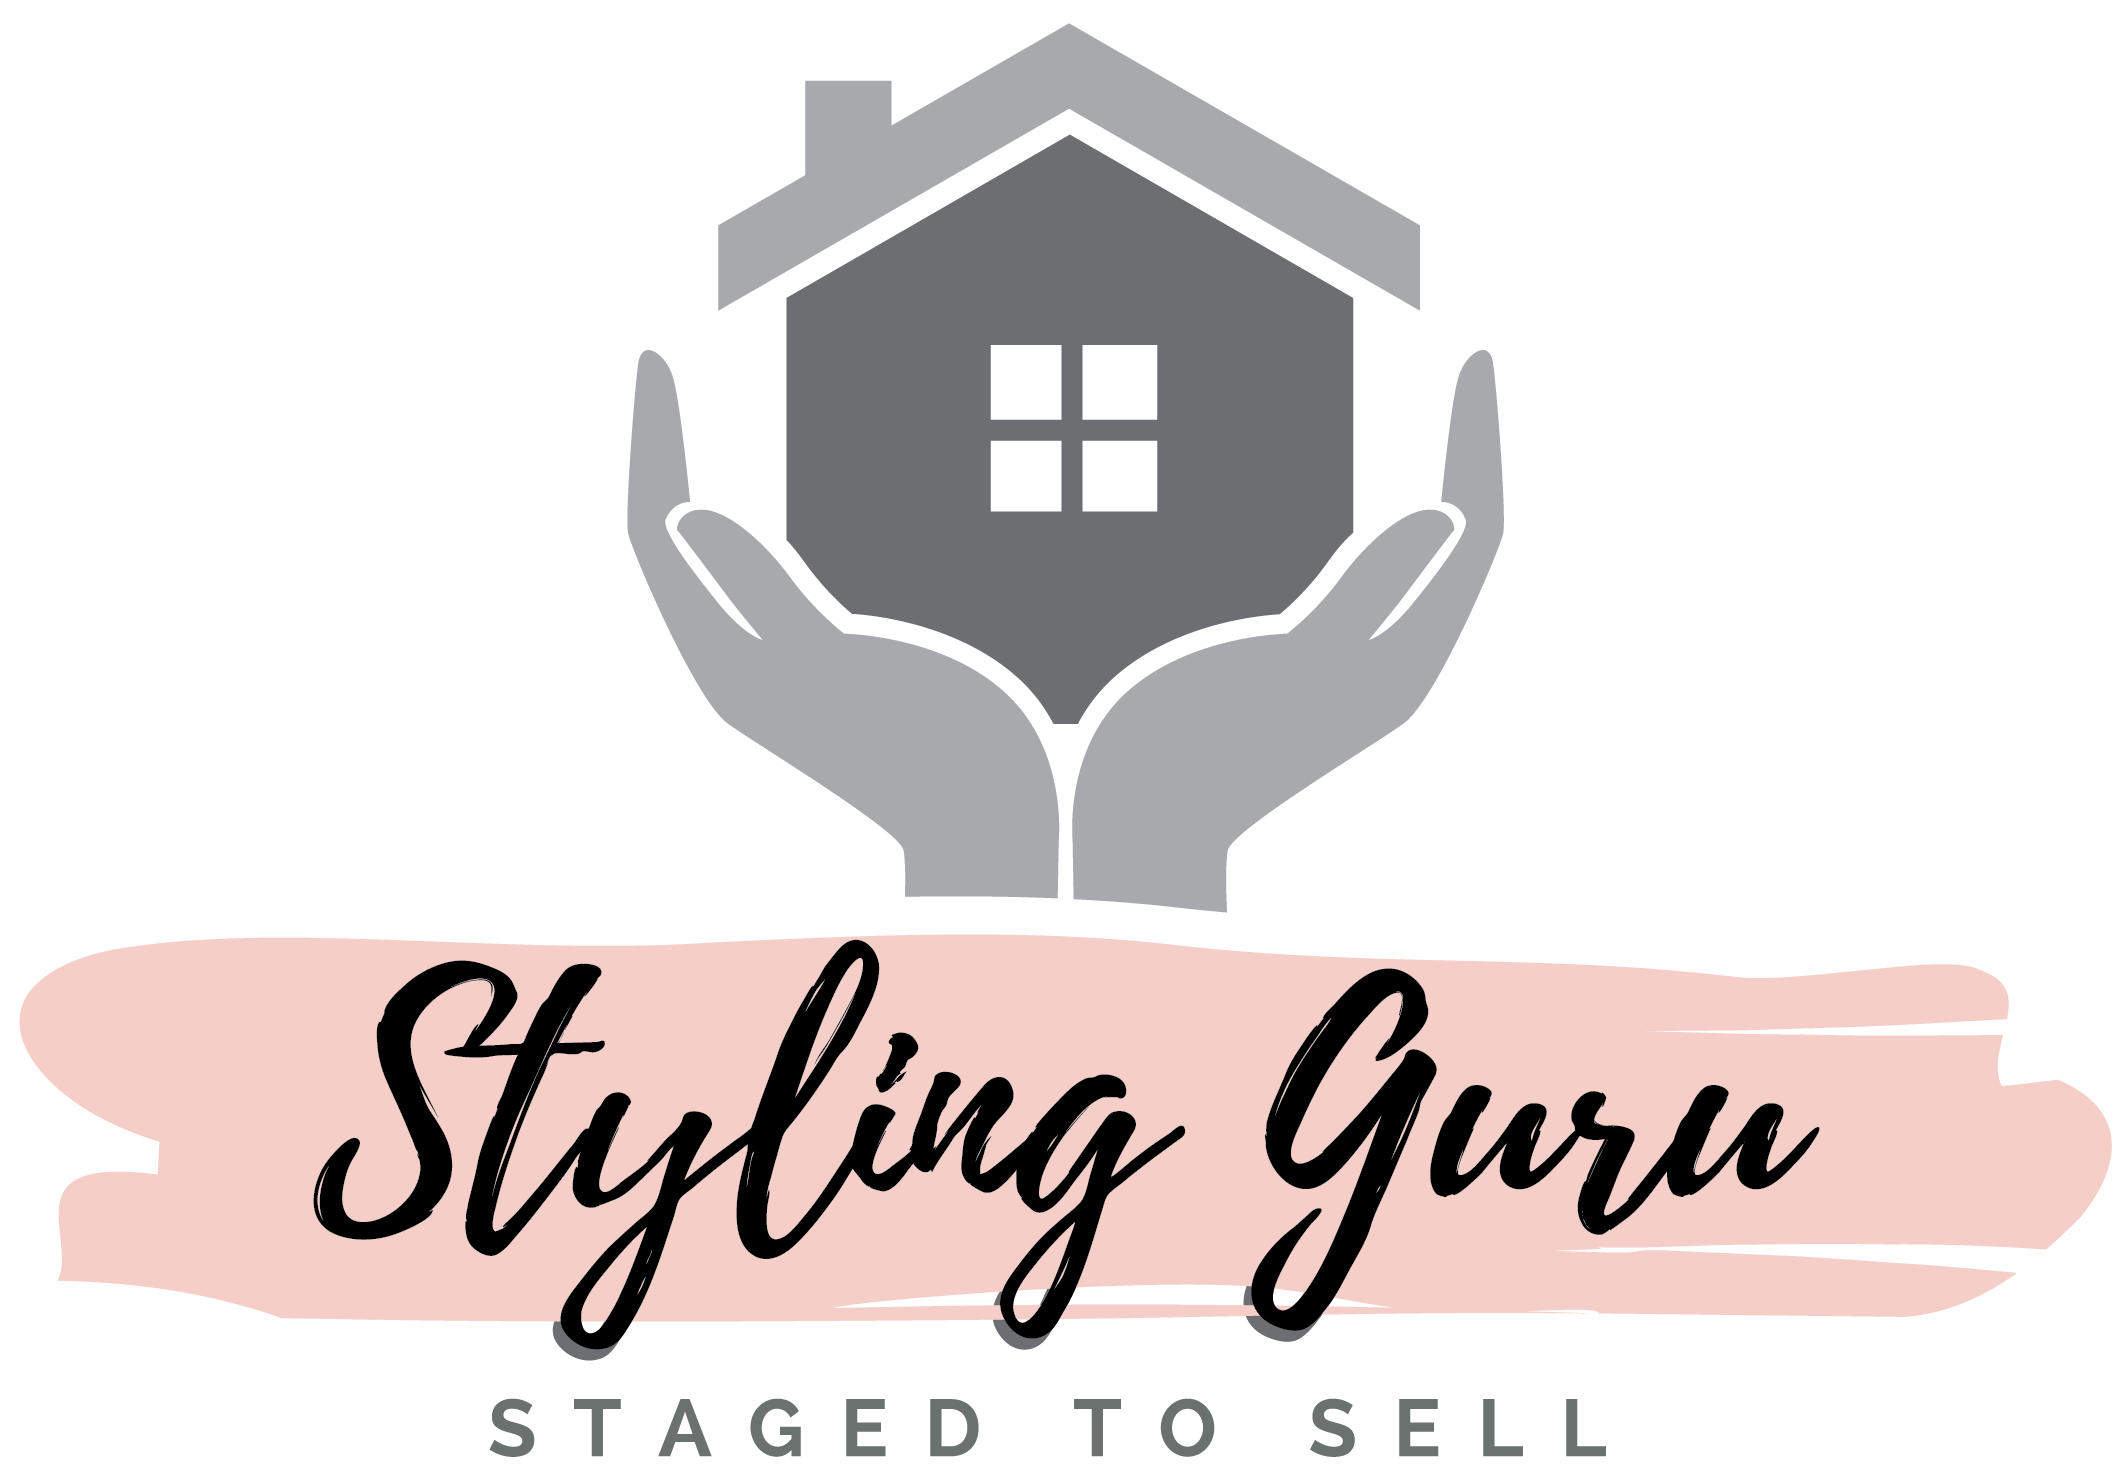 Styling Guru Website